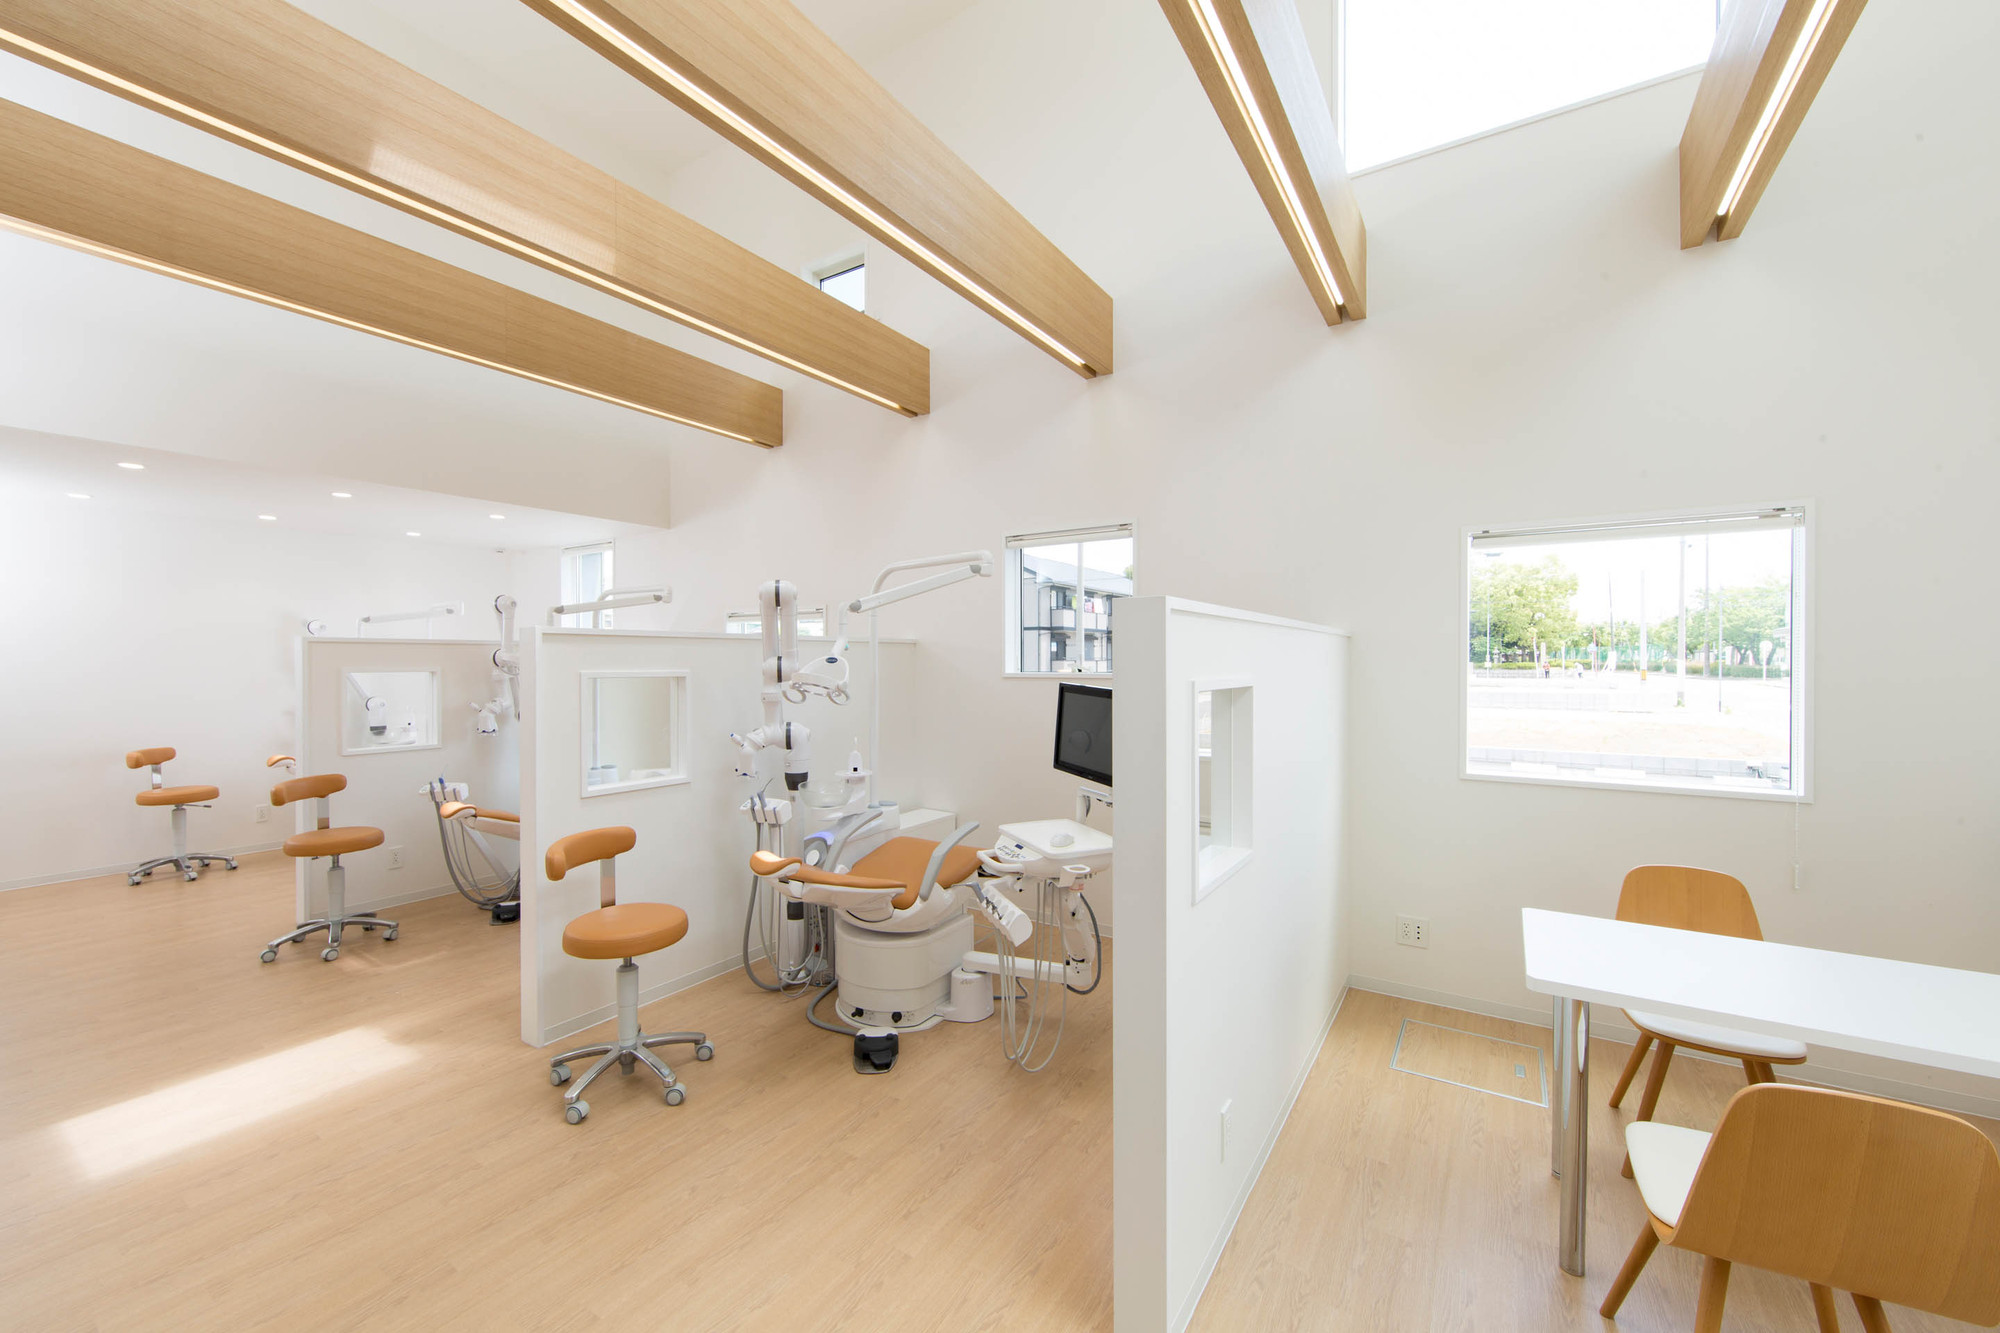 gallery of yokoi dental clinic iks design msd office 11